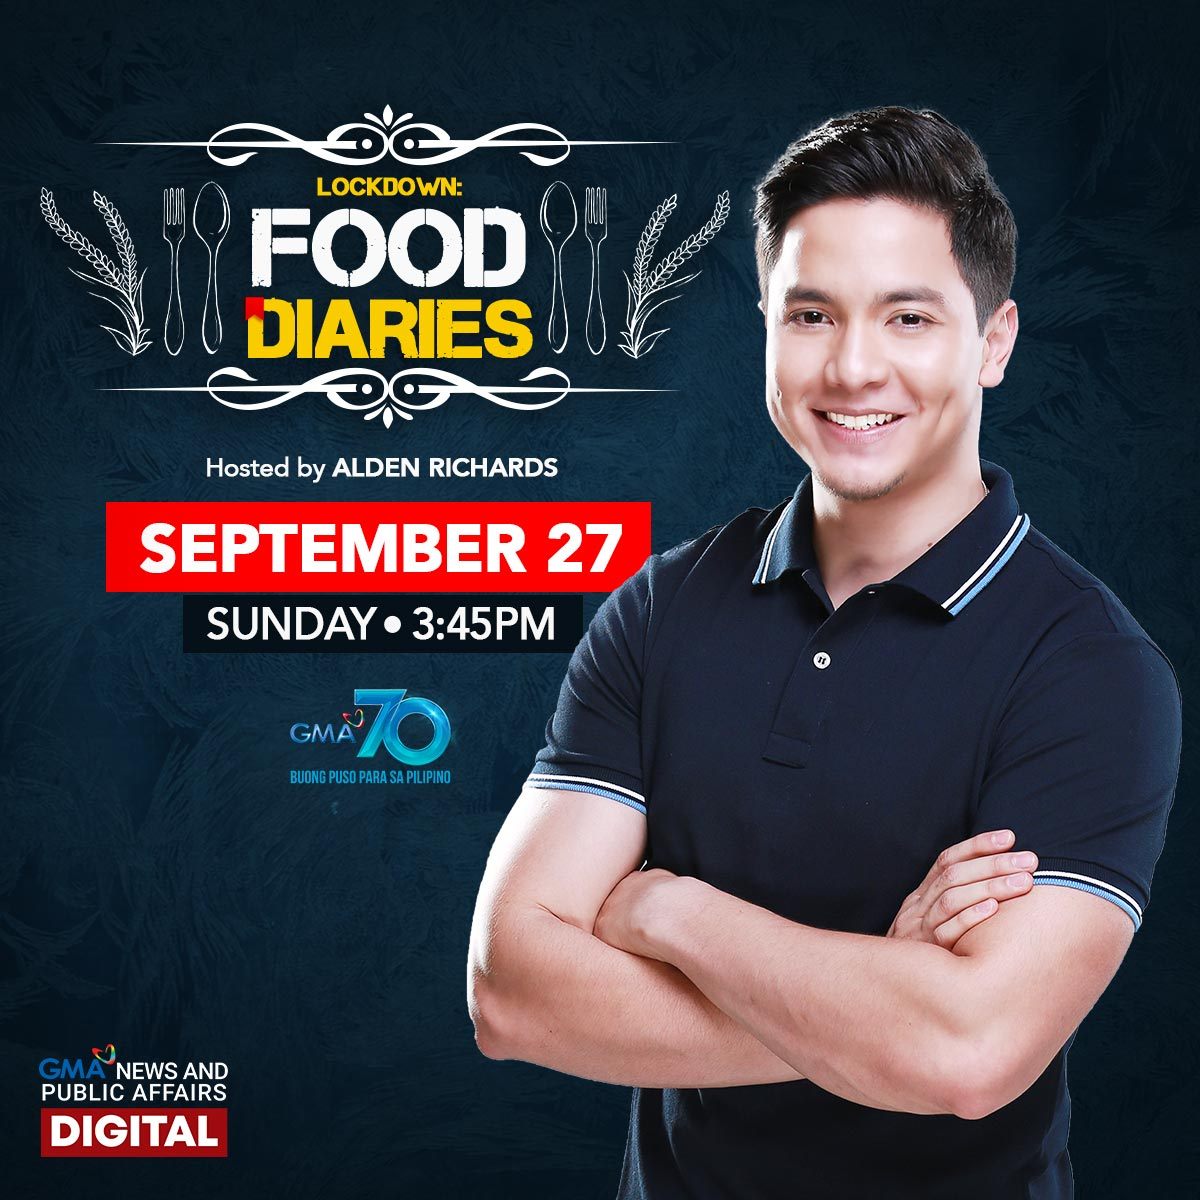 Don't miss #LockdownFoodDiaries, hosted by Asia's Multimedia Star @aldenrichards02, this Sunday, 3:45 PM on @gmanetwork! https://t.co/SJTt1AsTgm https://t.co/5cYSufZVTM